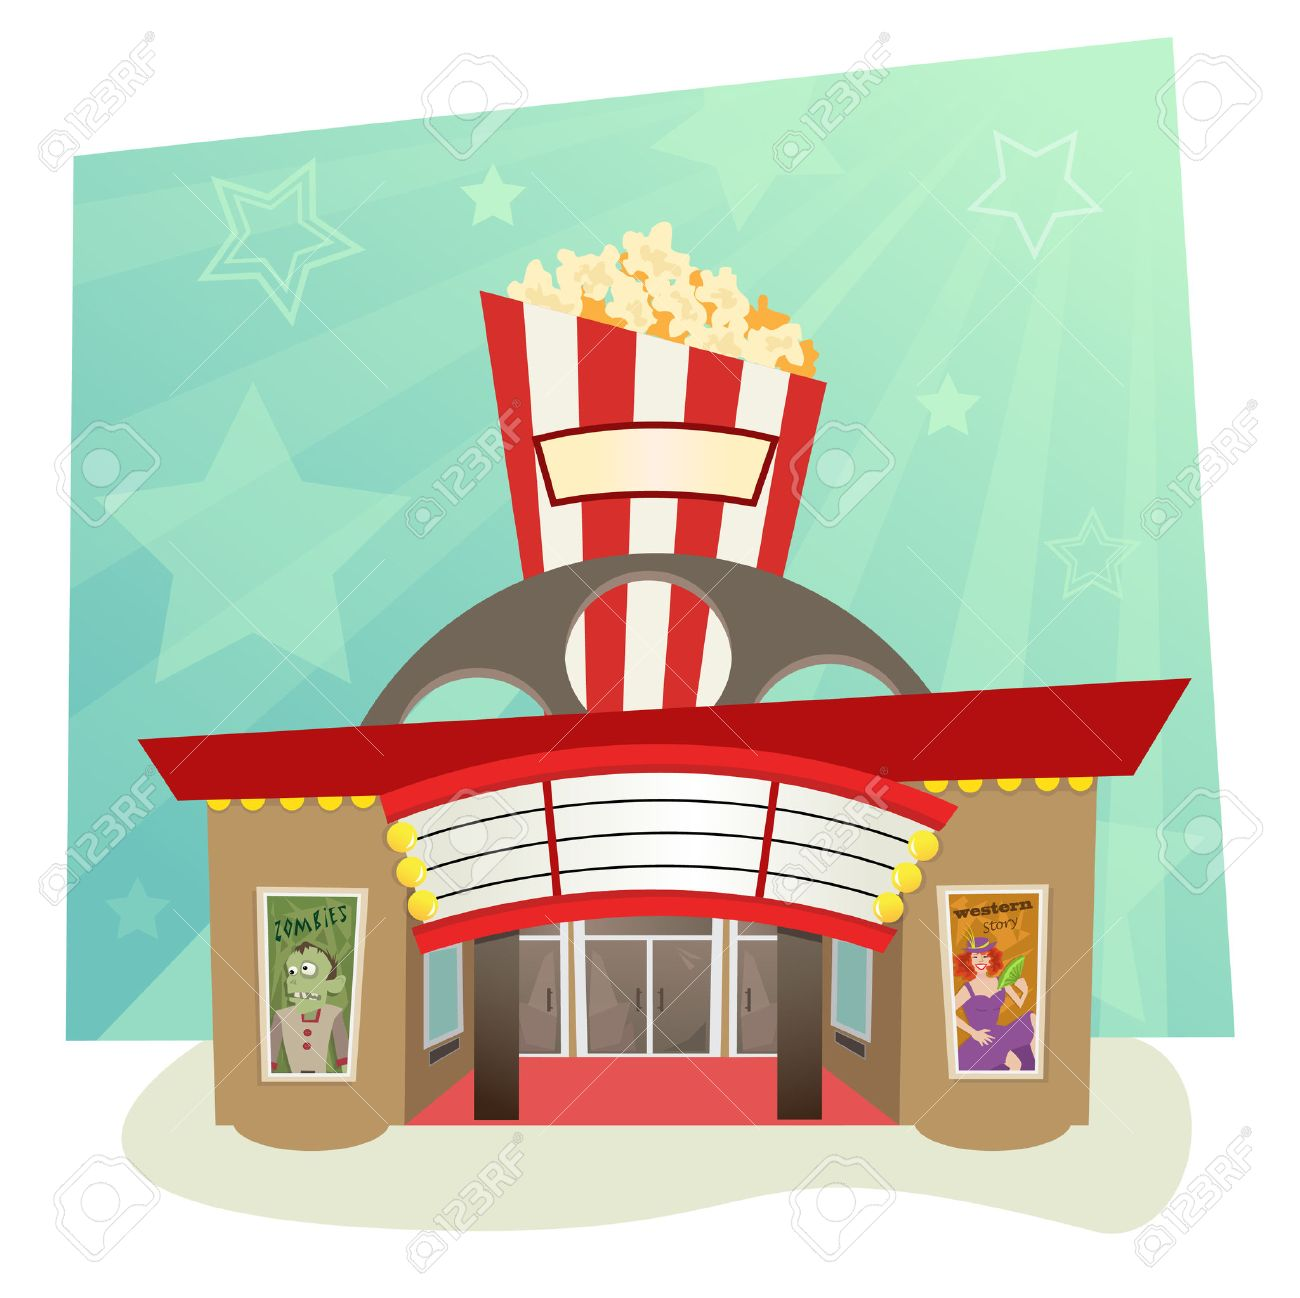 819 Movie Theater free clipart.